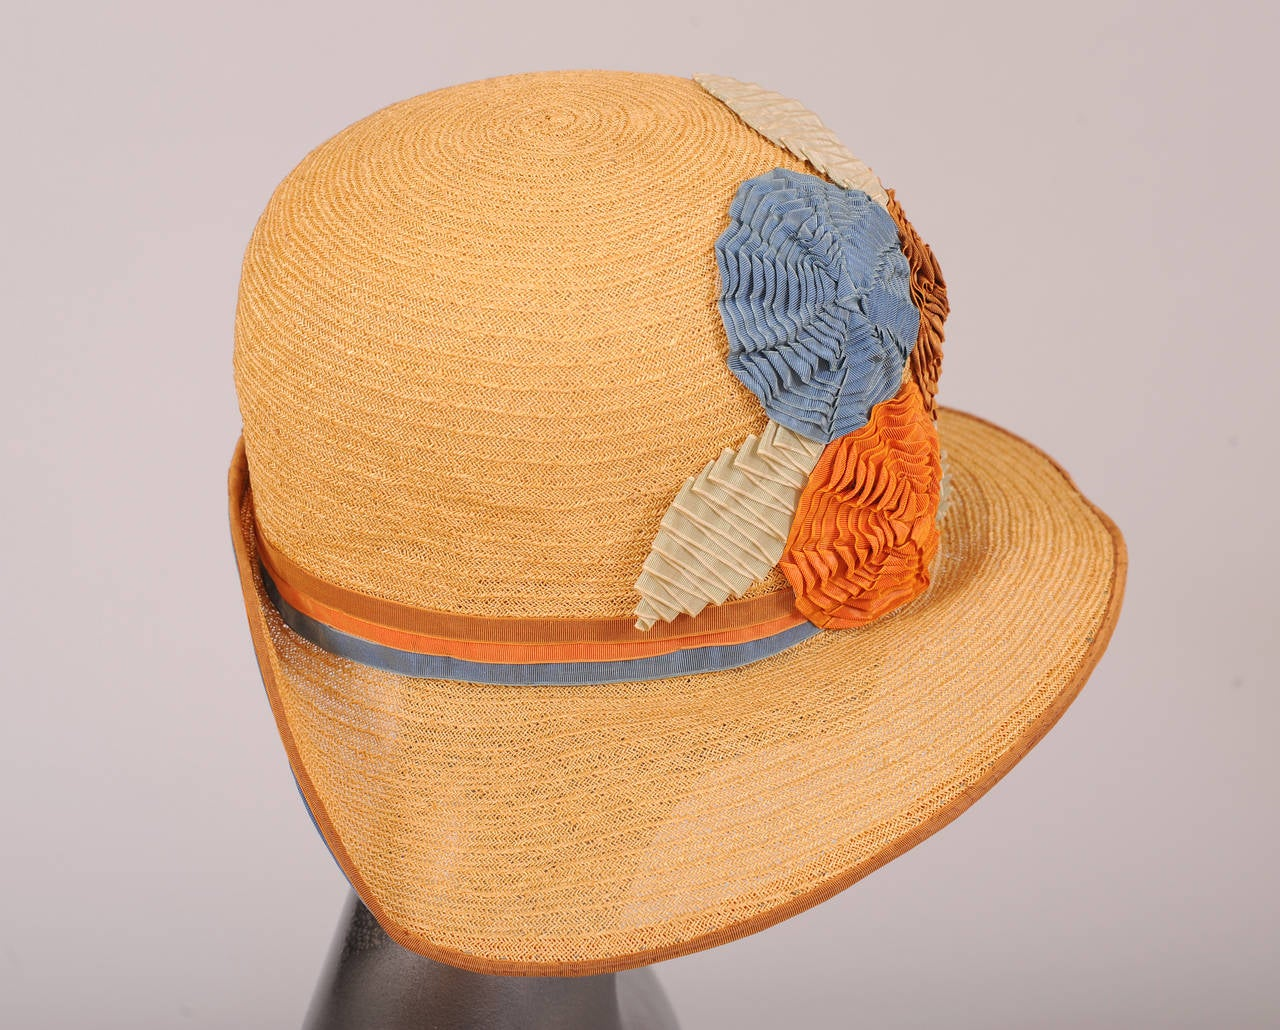 This 1920's natural straw cloche is beautifully trimmed with multi color grosgrain ribbons. The hat band is three narrow ribbons, tan, coral and blue, sewn together to create a wide band. Large flowers and leaves are made from pleated and folded